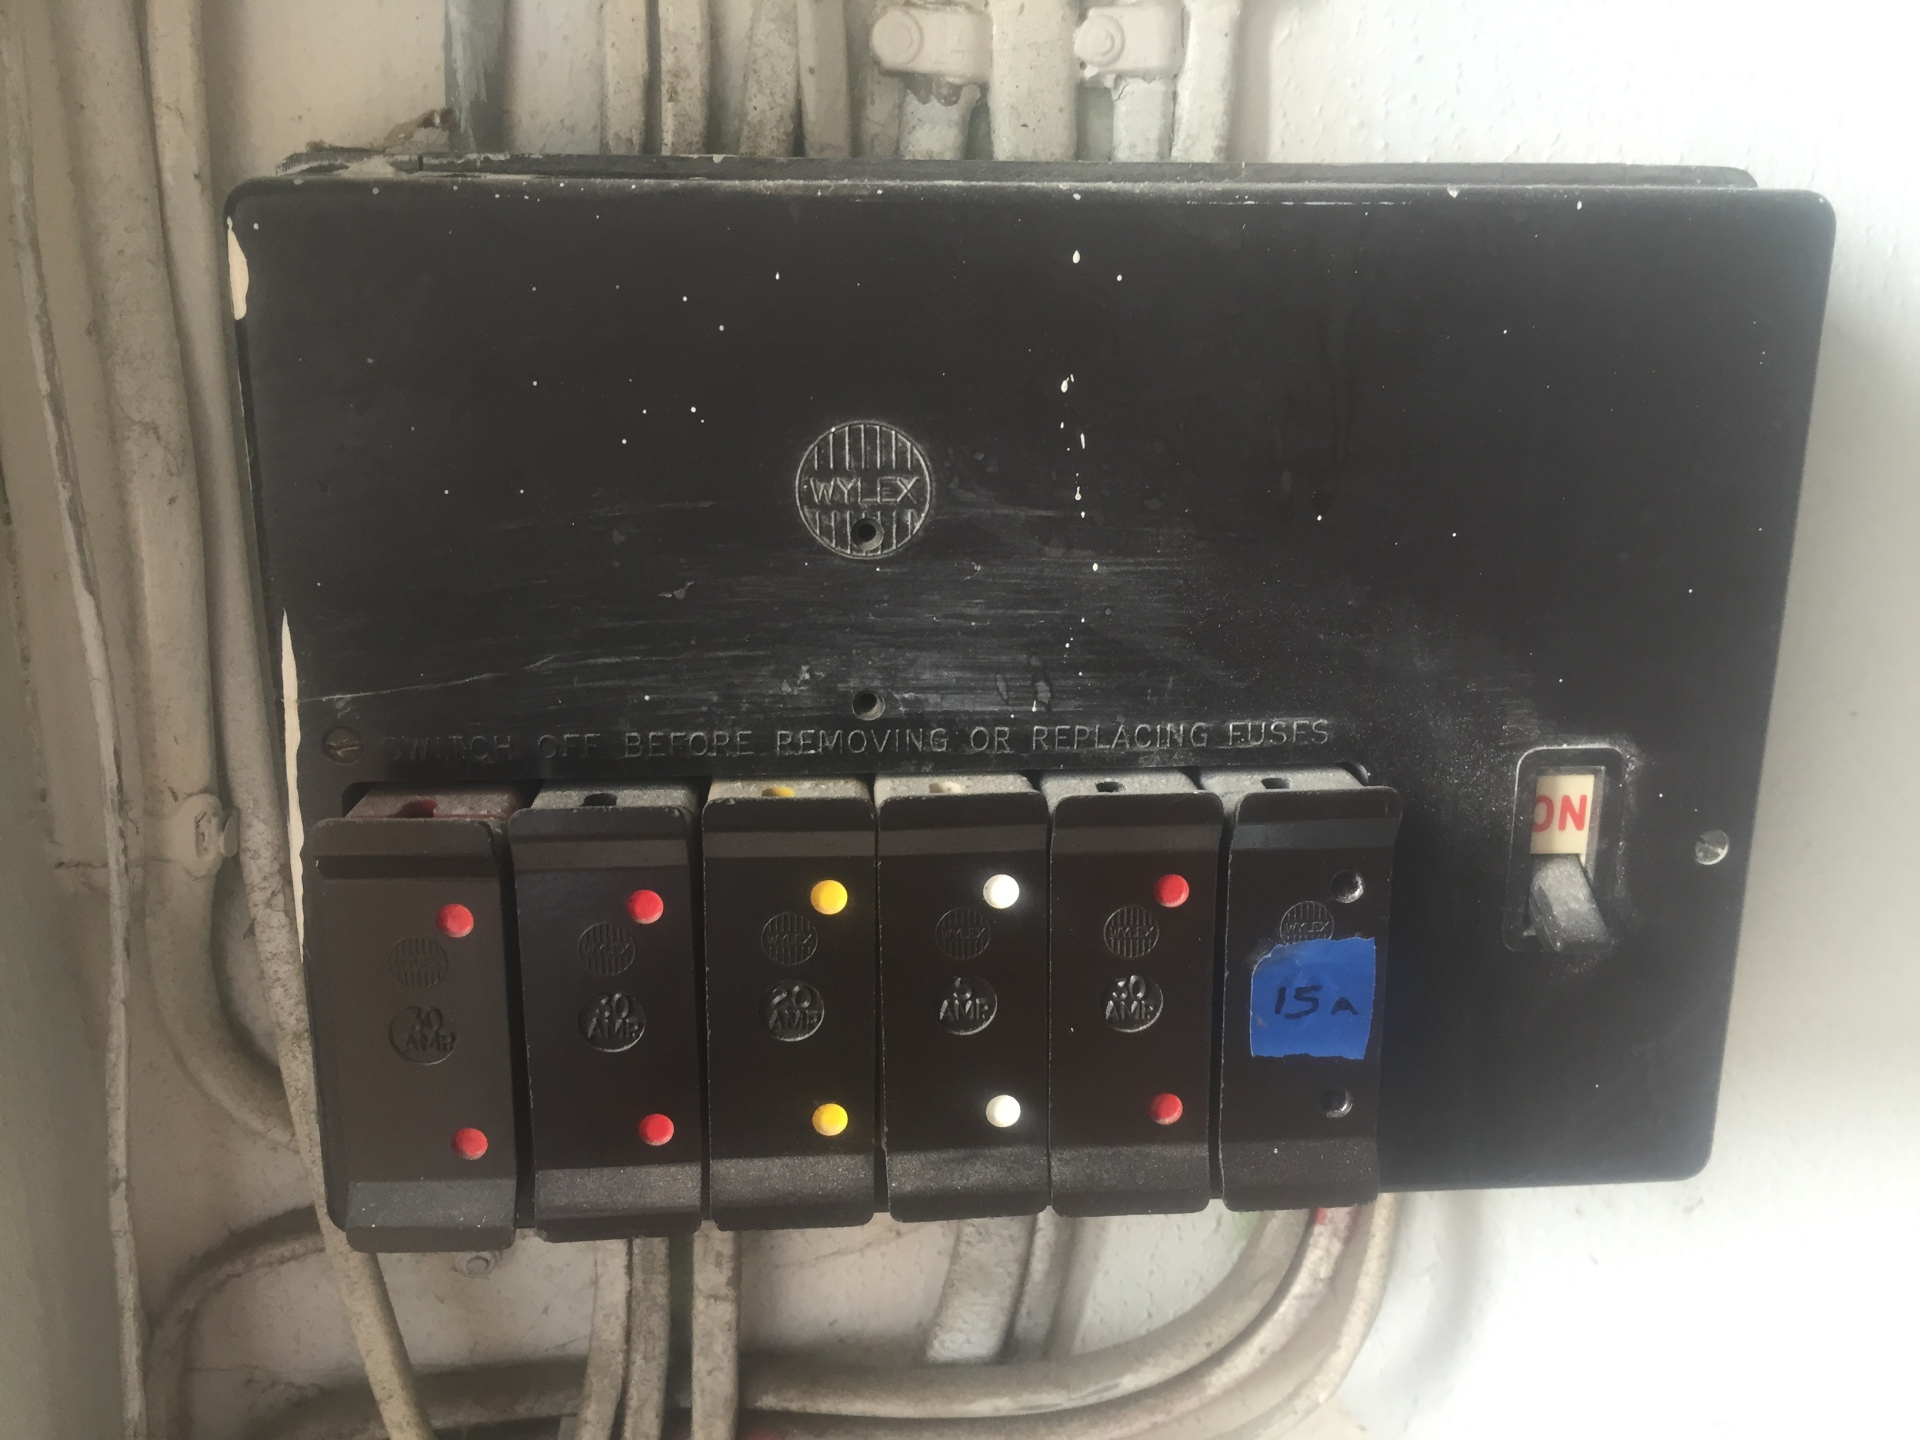 BEFORE - Old Unsafe consumer unit